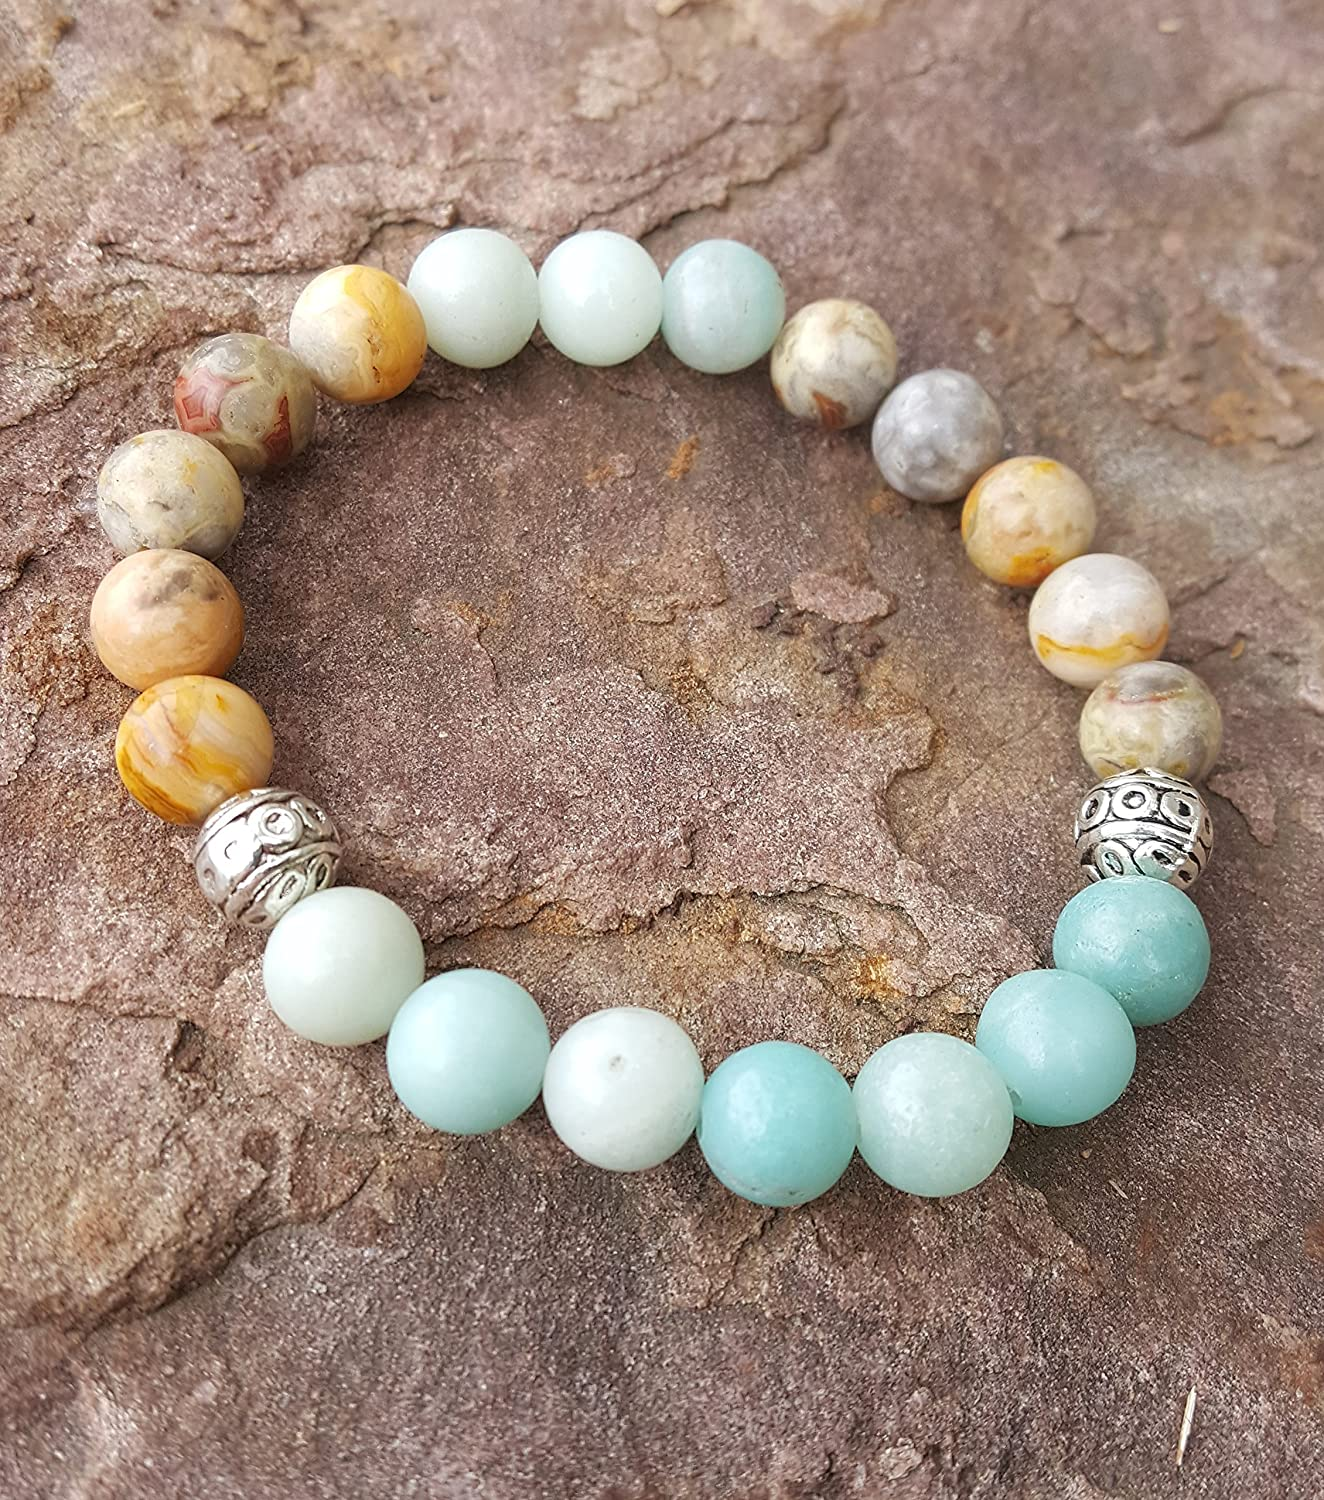 Clear blue - Best seller - Handmade natural semi-precious healing gemstones crystals stretch bracelet made of crazy lace agate and amazonite 8mm beads tibetan charm women